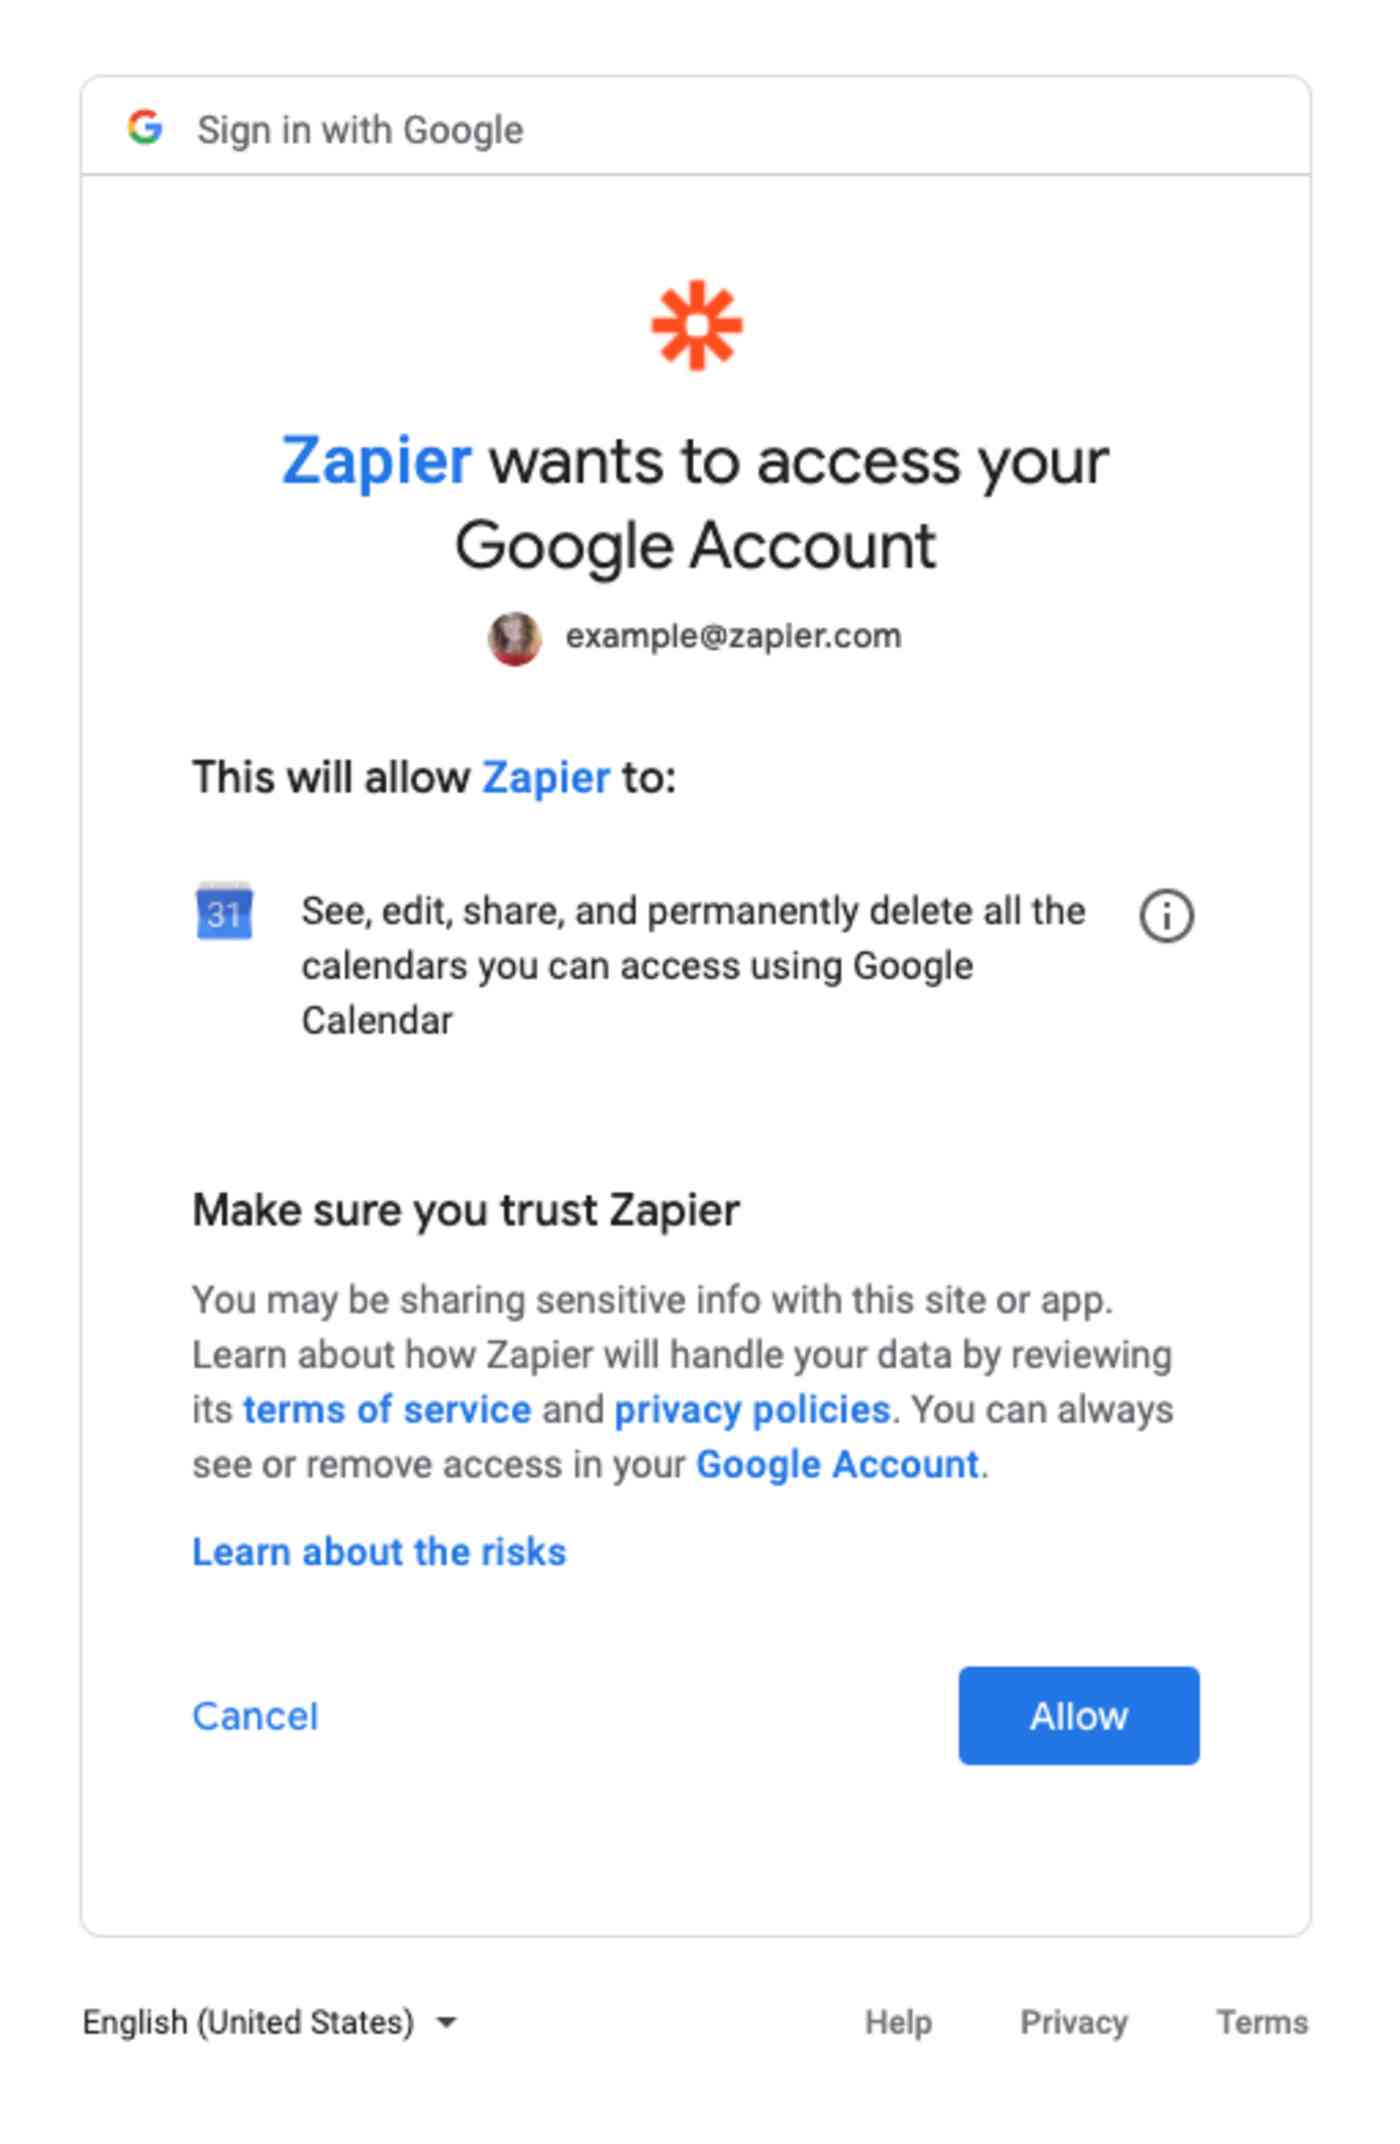 """Reads: """"Zapier wants to access your Google Account"""""""